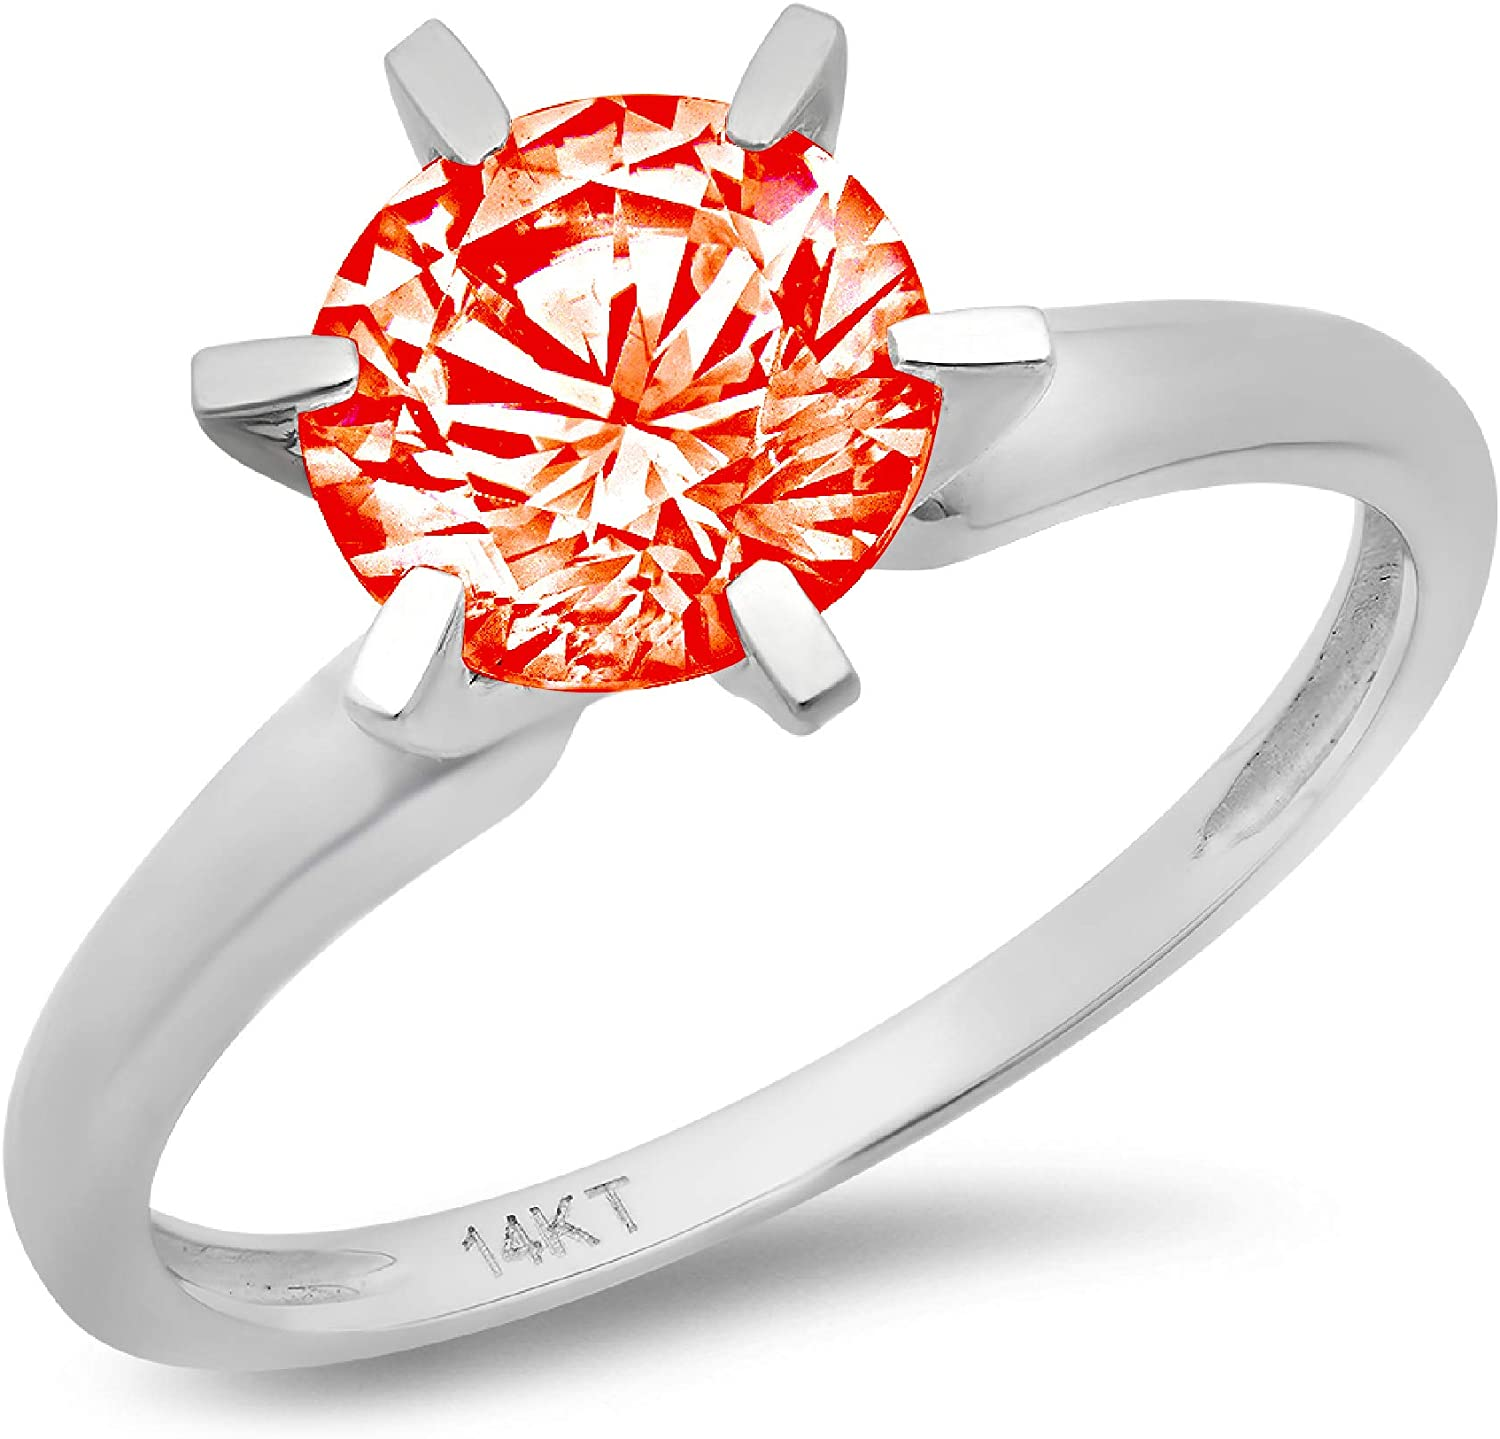 0.45ct Brilliant Round Cut Solitaire Red Simulated Diamond CZ Ideal VVS1 D 6-Prong Classic Designer Statement Ring in Solid Real 14k white gold for Women